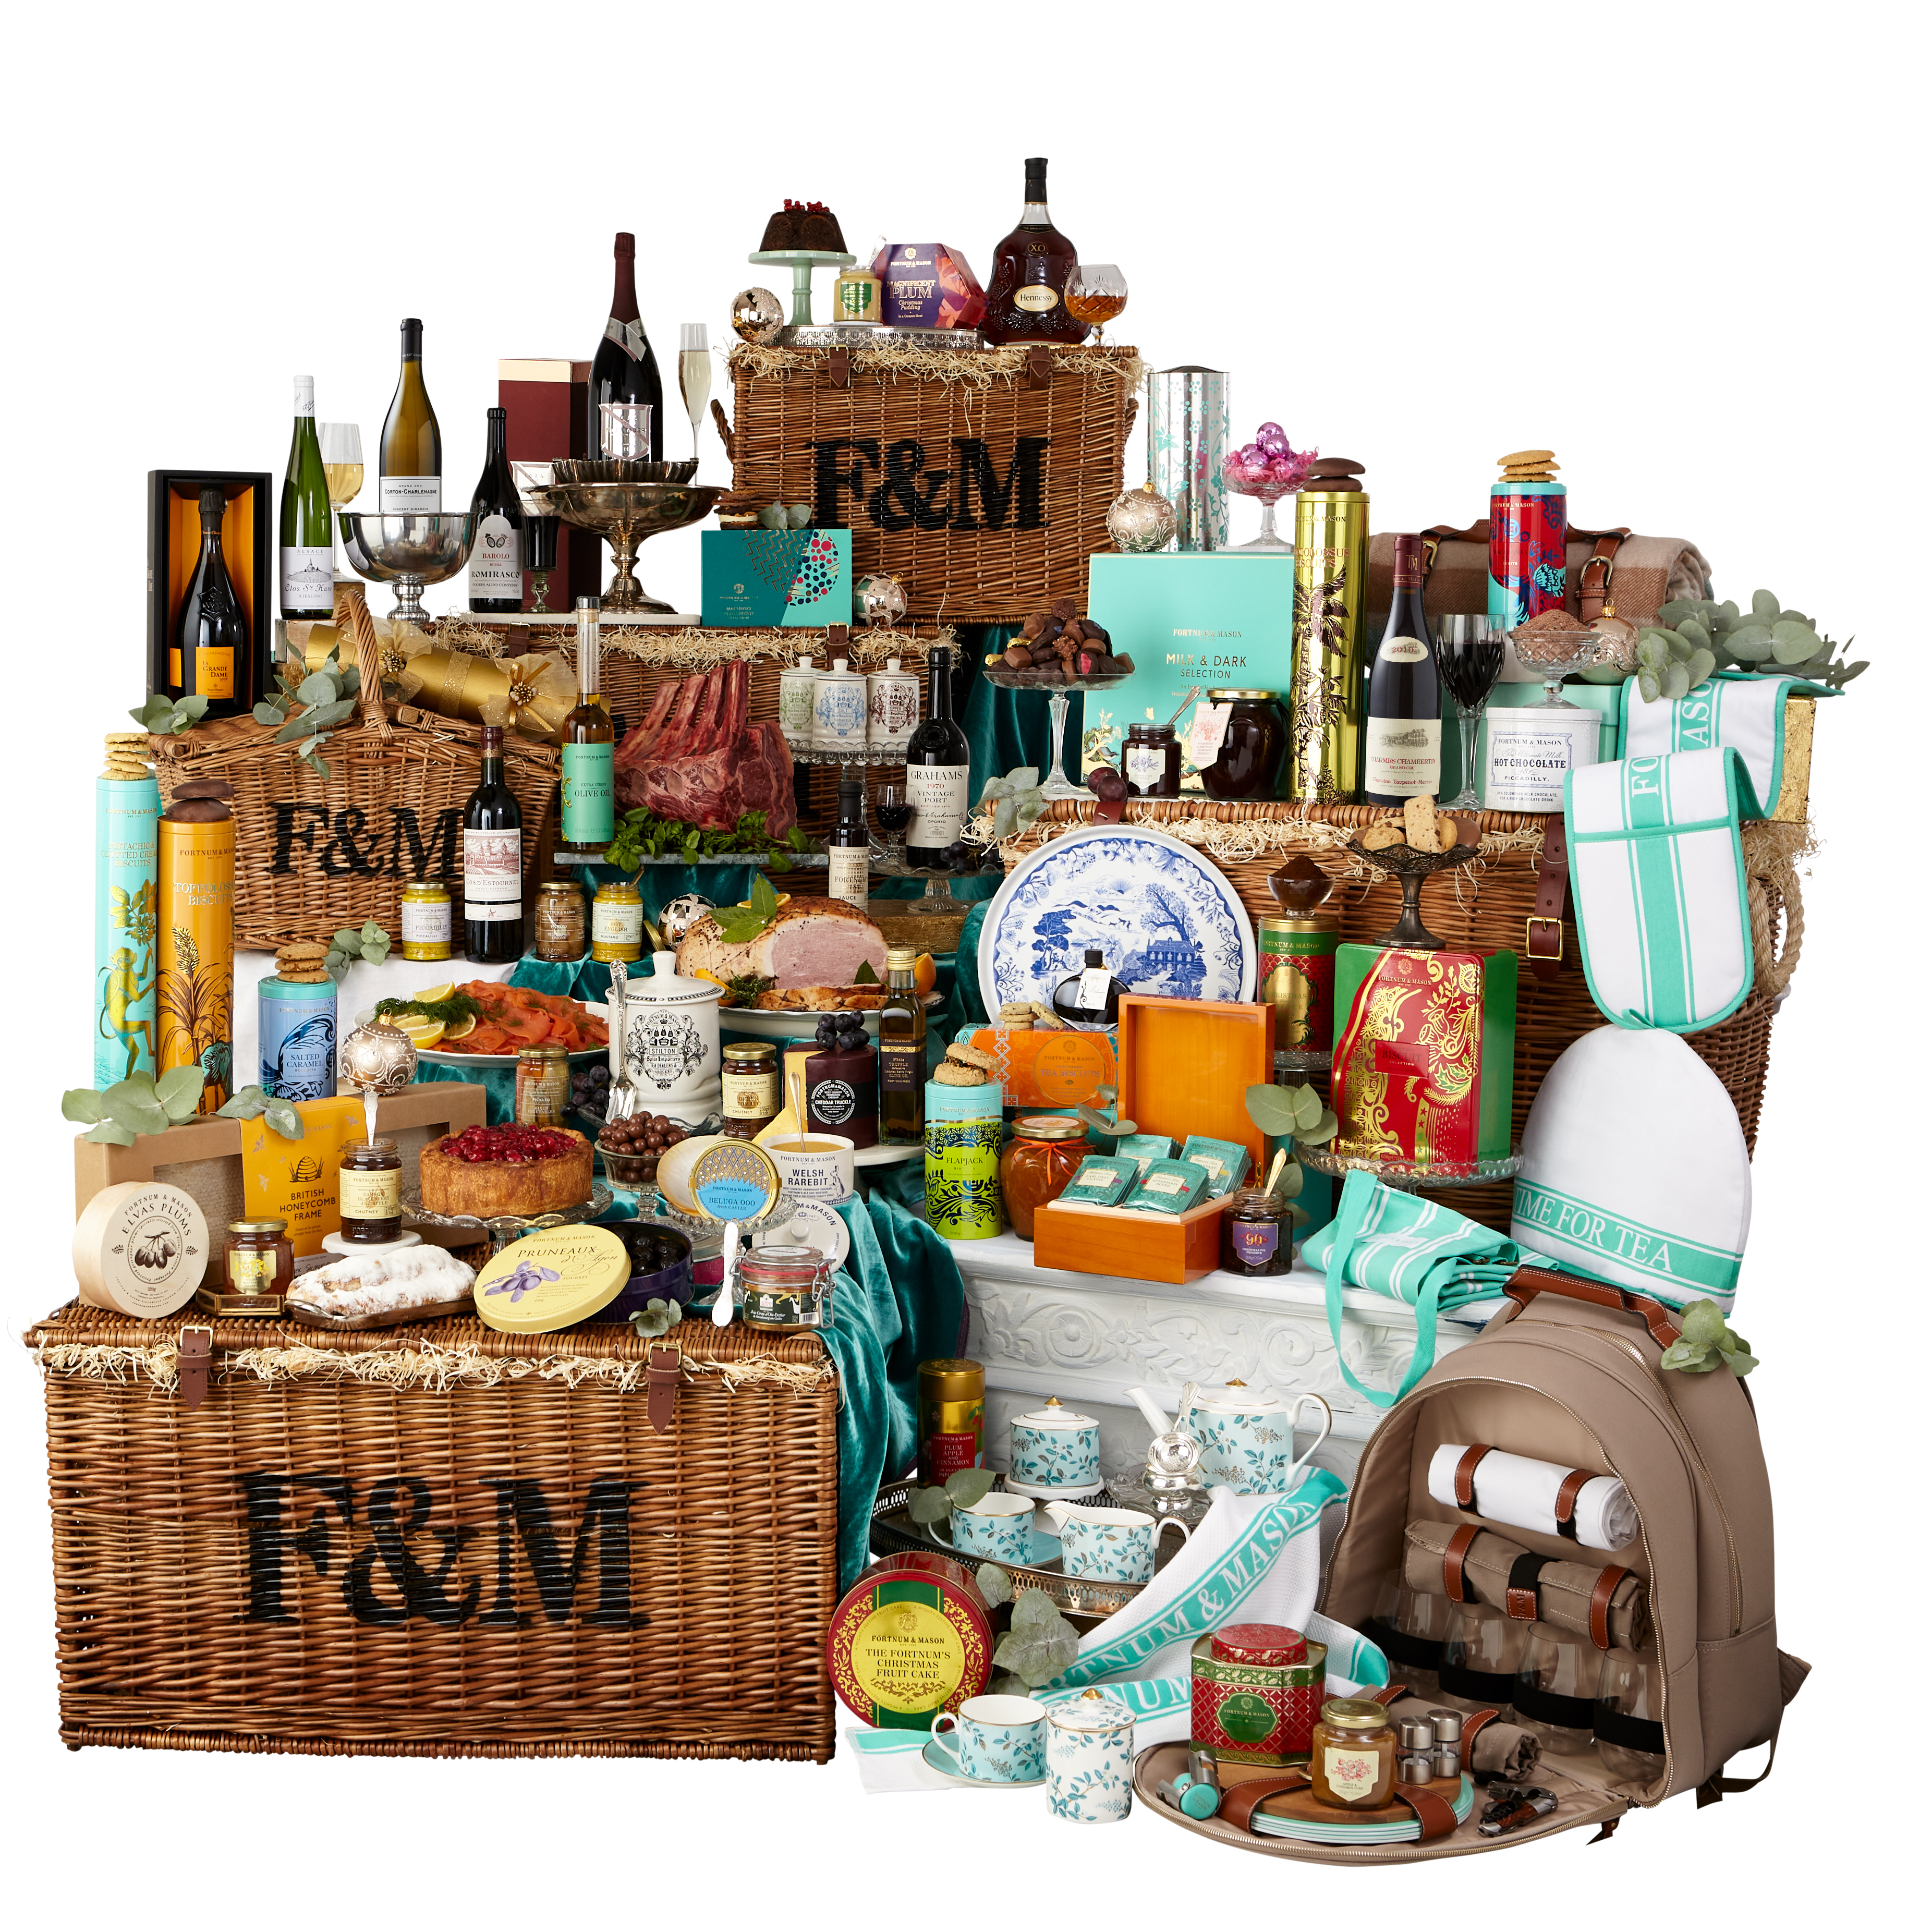 Season's eatings: Discover the top festive hampers of 2020